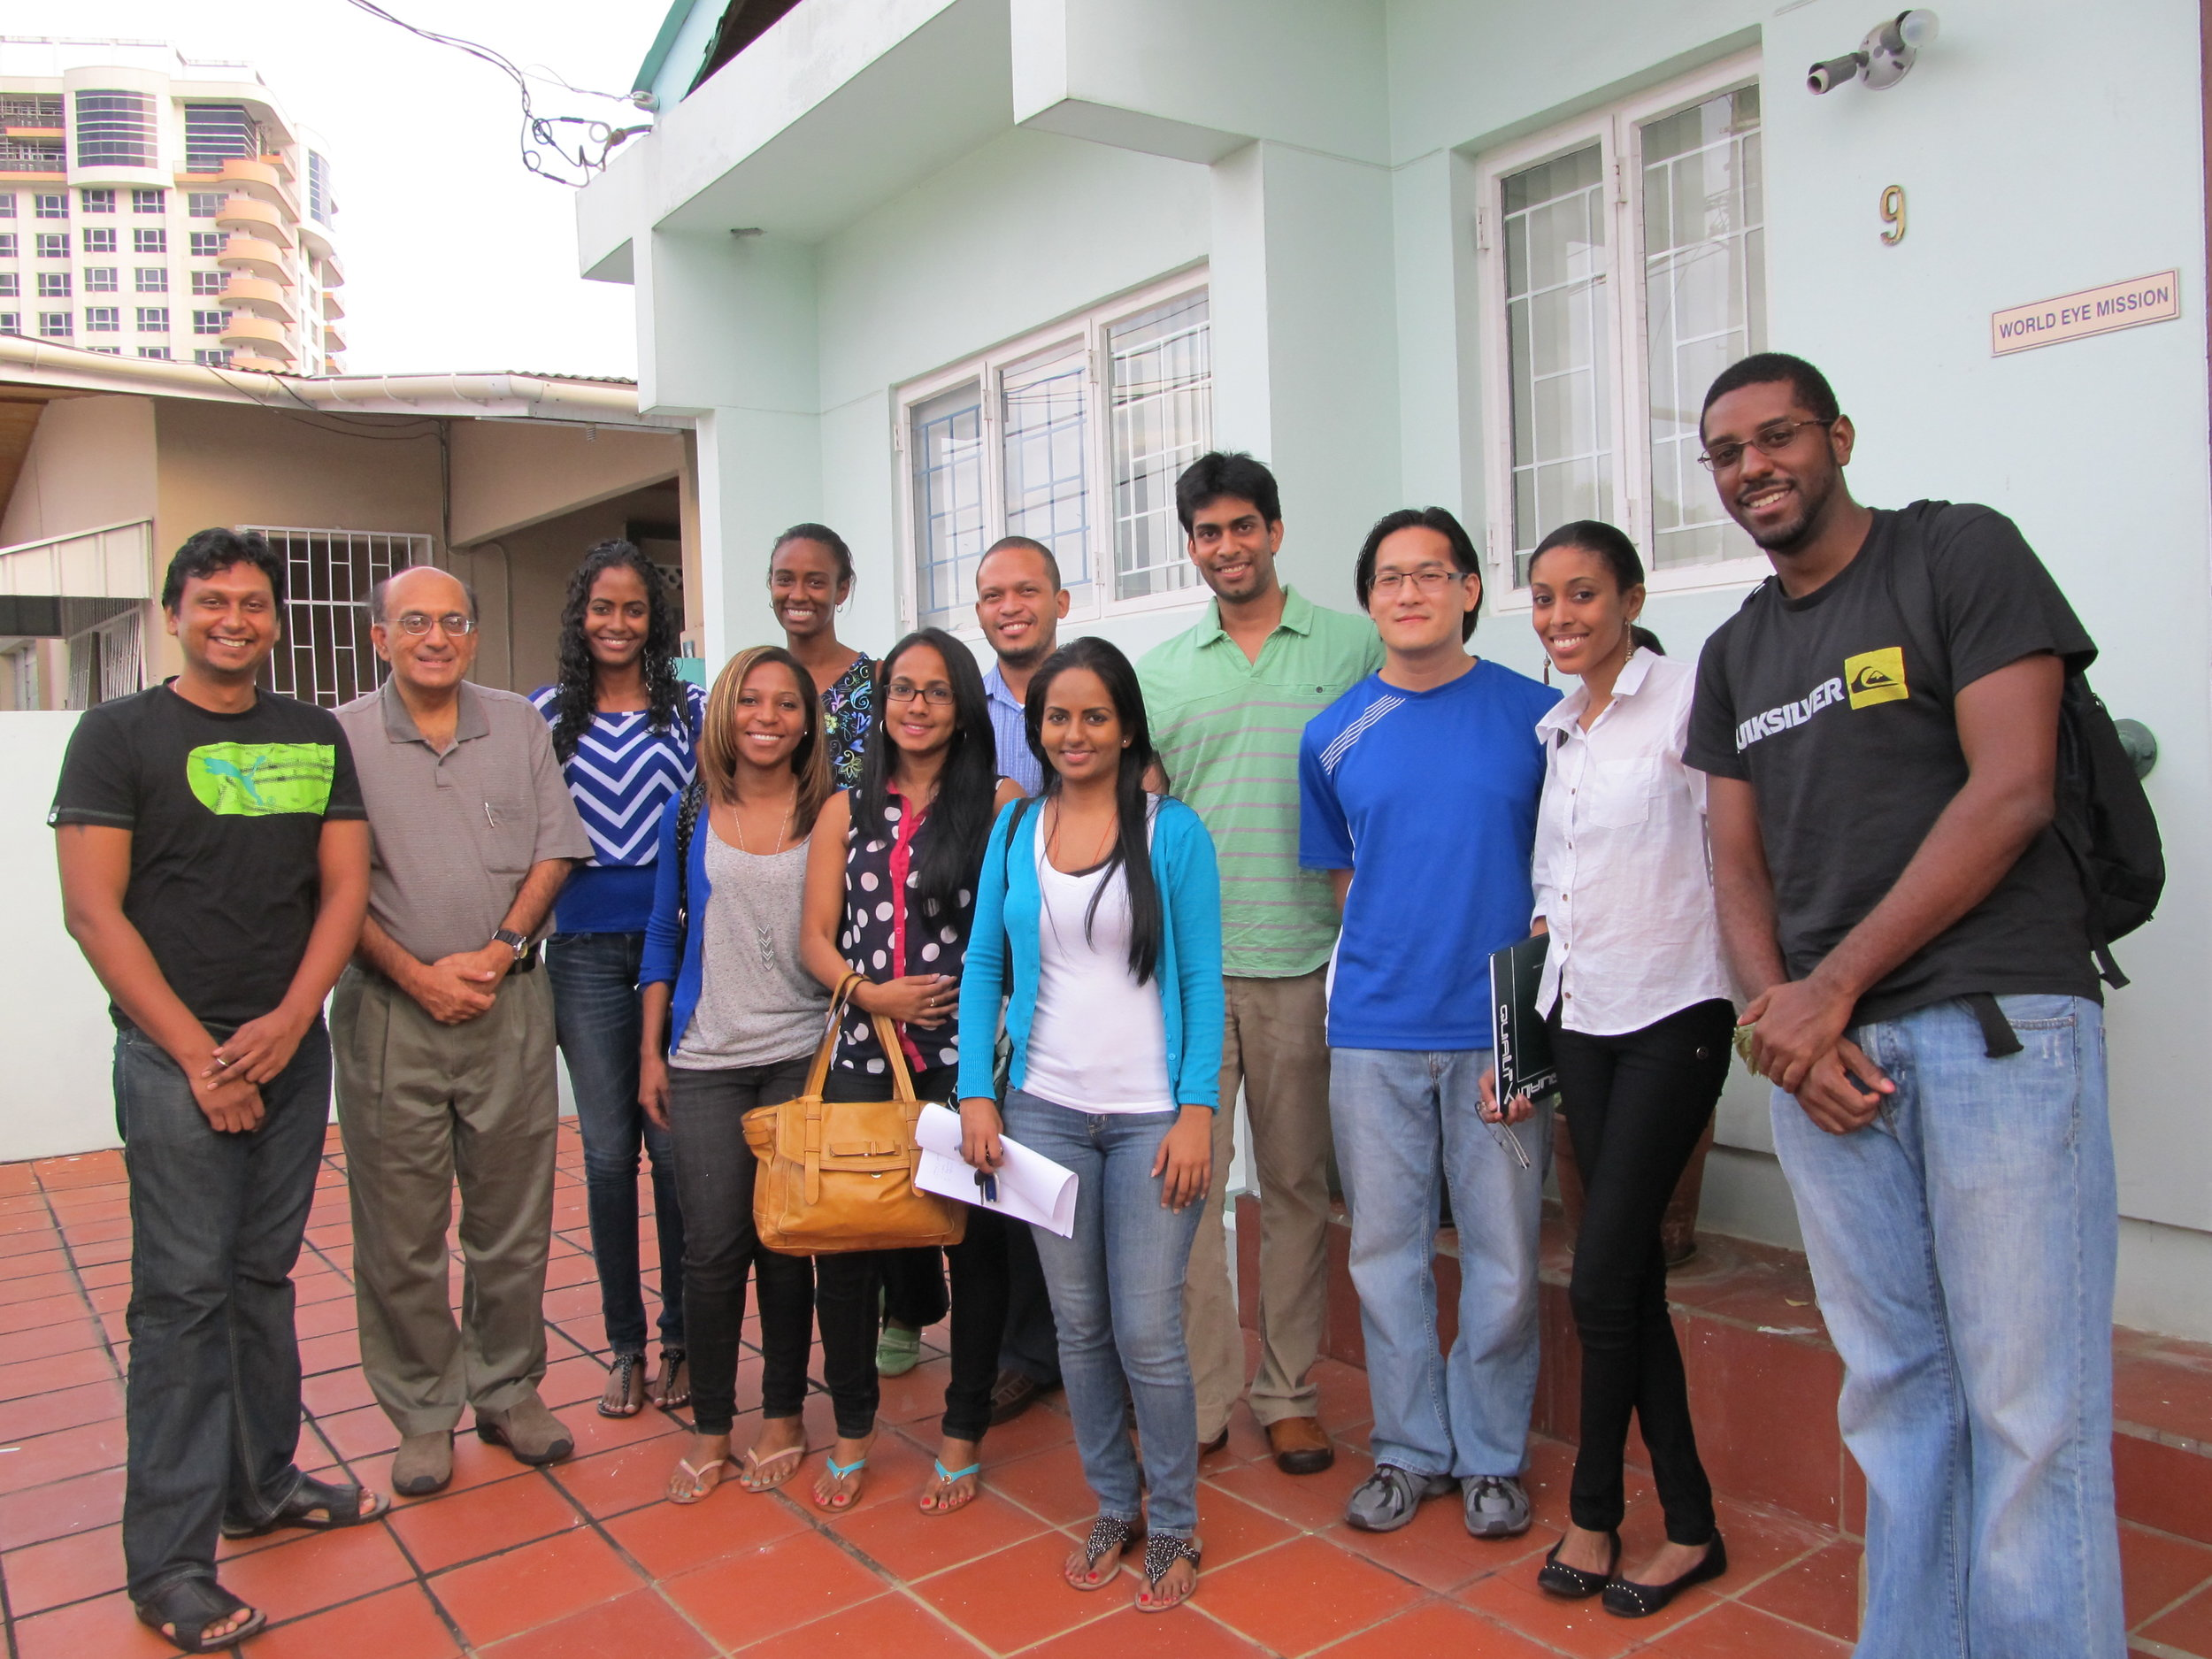 Residents outside the World Eye Mission clinic in Port of Spain, Trinidad, 2013.